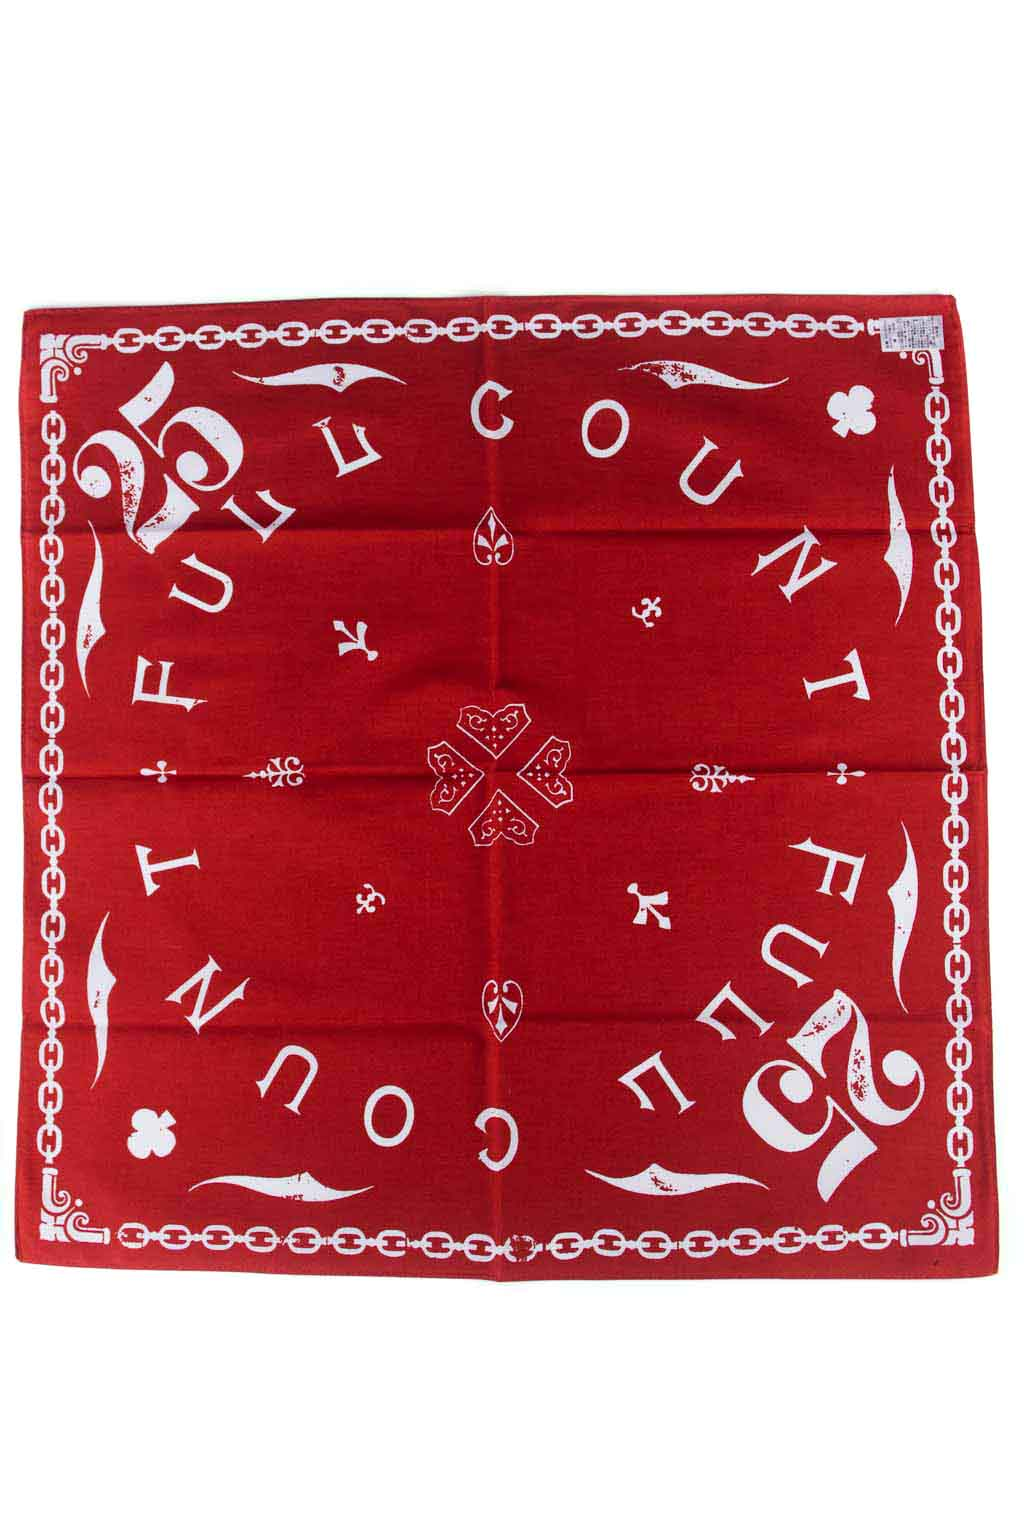 Bandanna (Fullcount Jeeans Makers) - RED